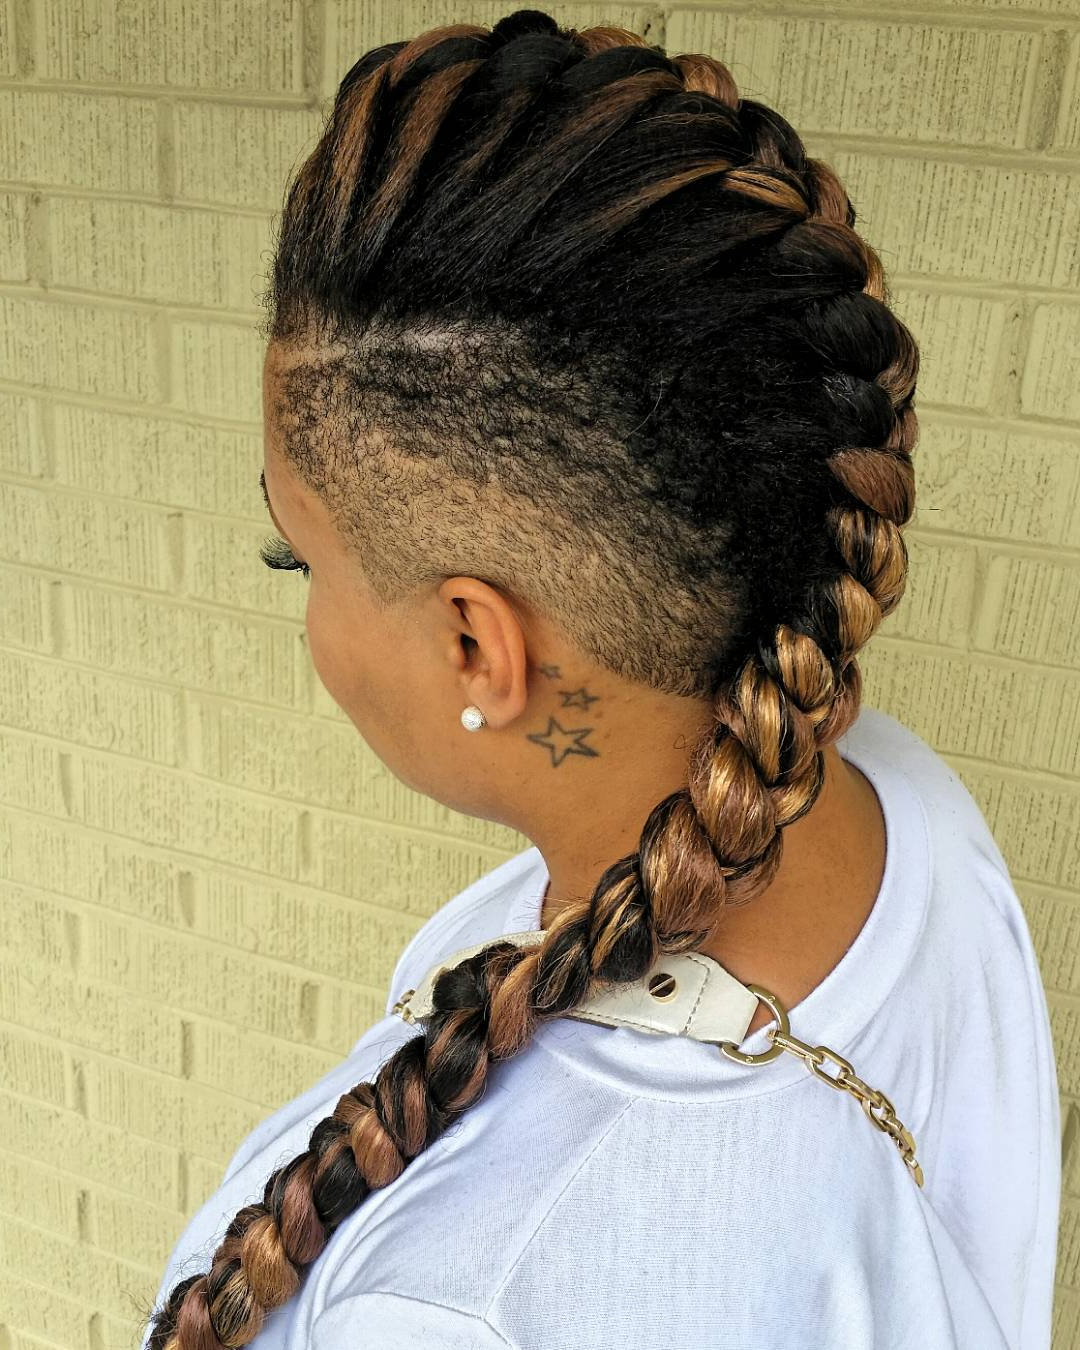 Mohawk Braids: 12 Braided Mohawk Hairstyles That Get Attention Inside Well Known Medium Length Hair Mohawk Hairstyles (View 15 of 20)